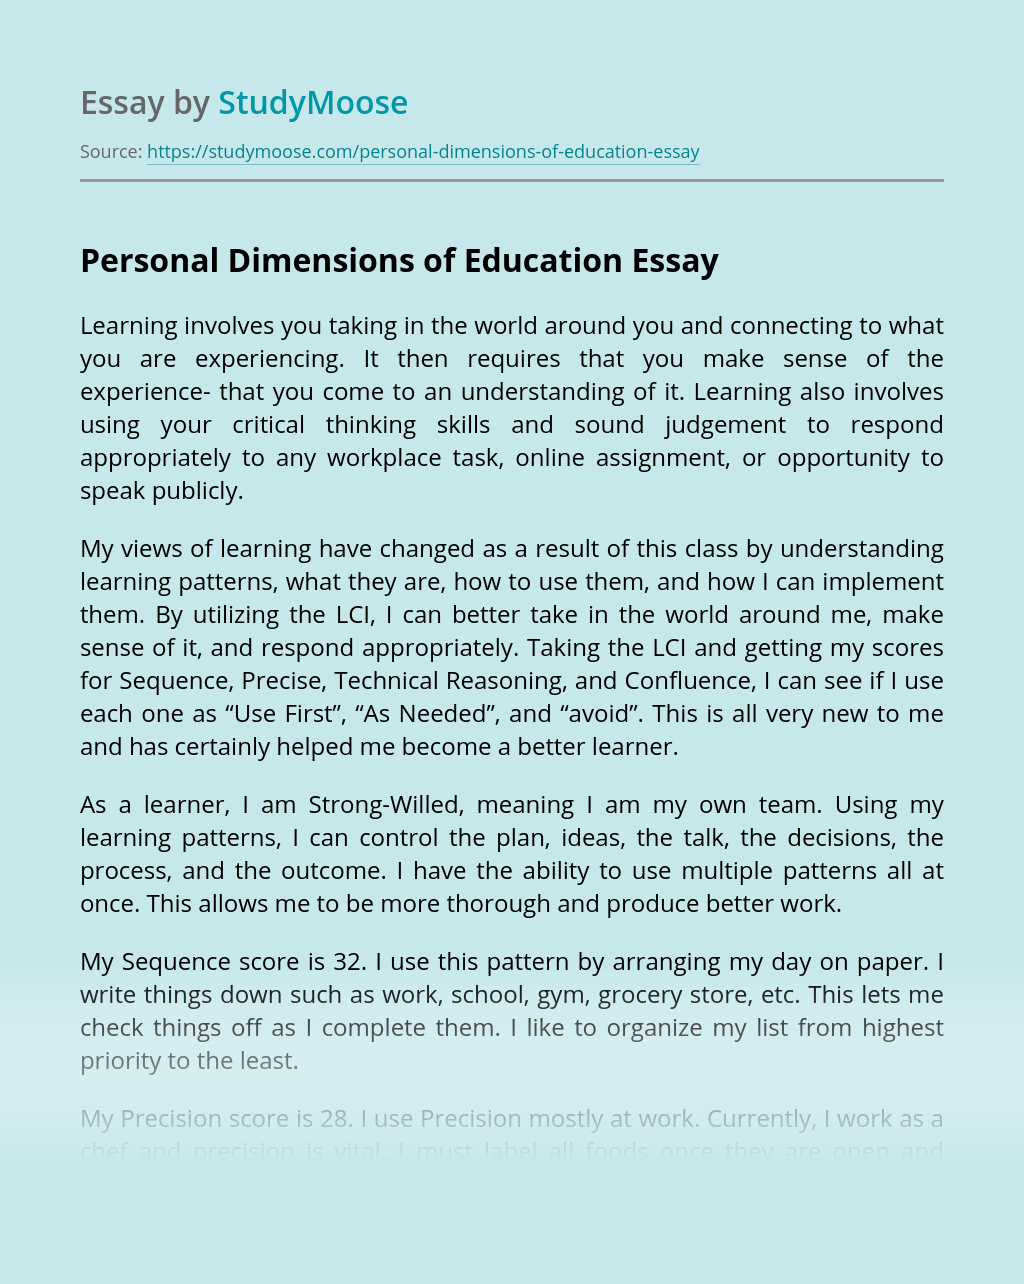 Personal Dimensions of Education